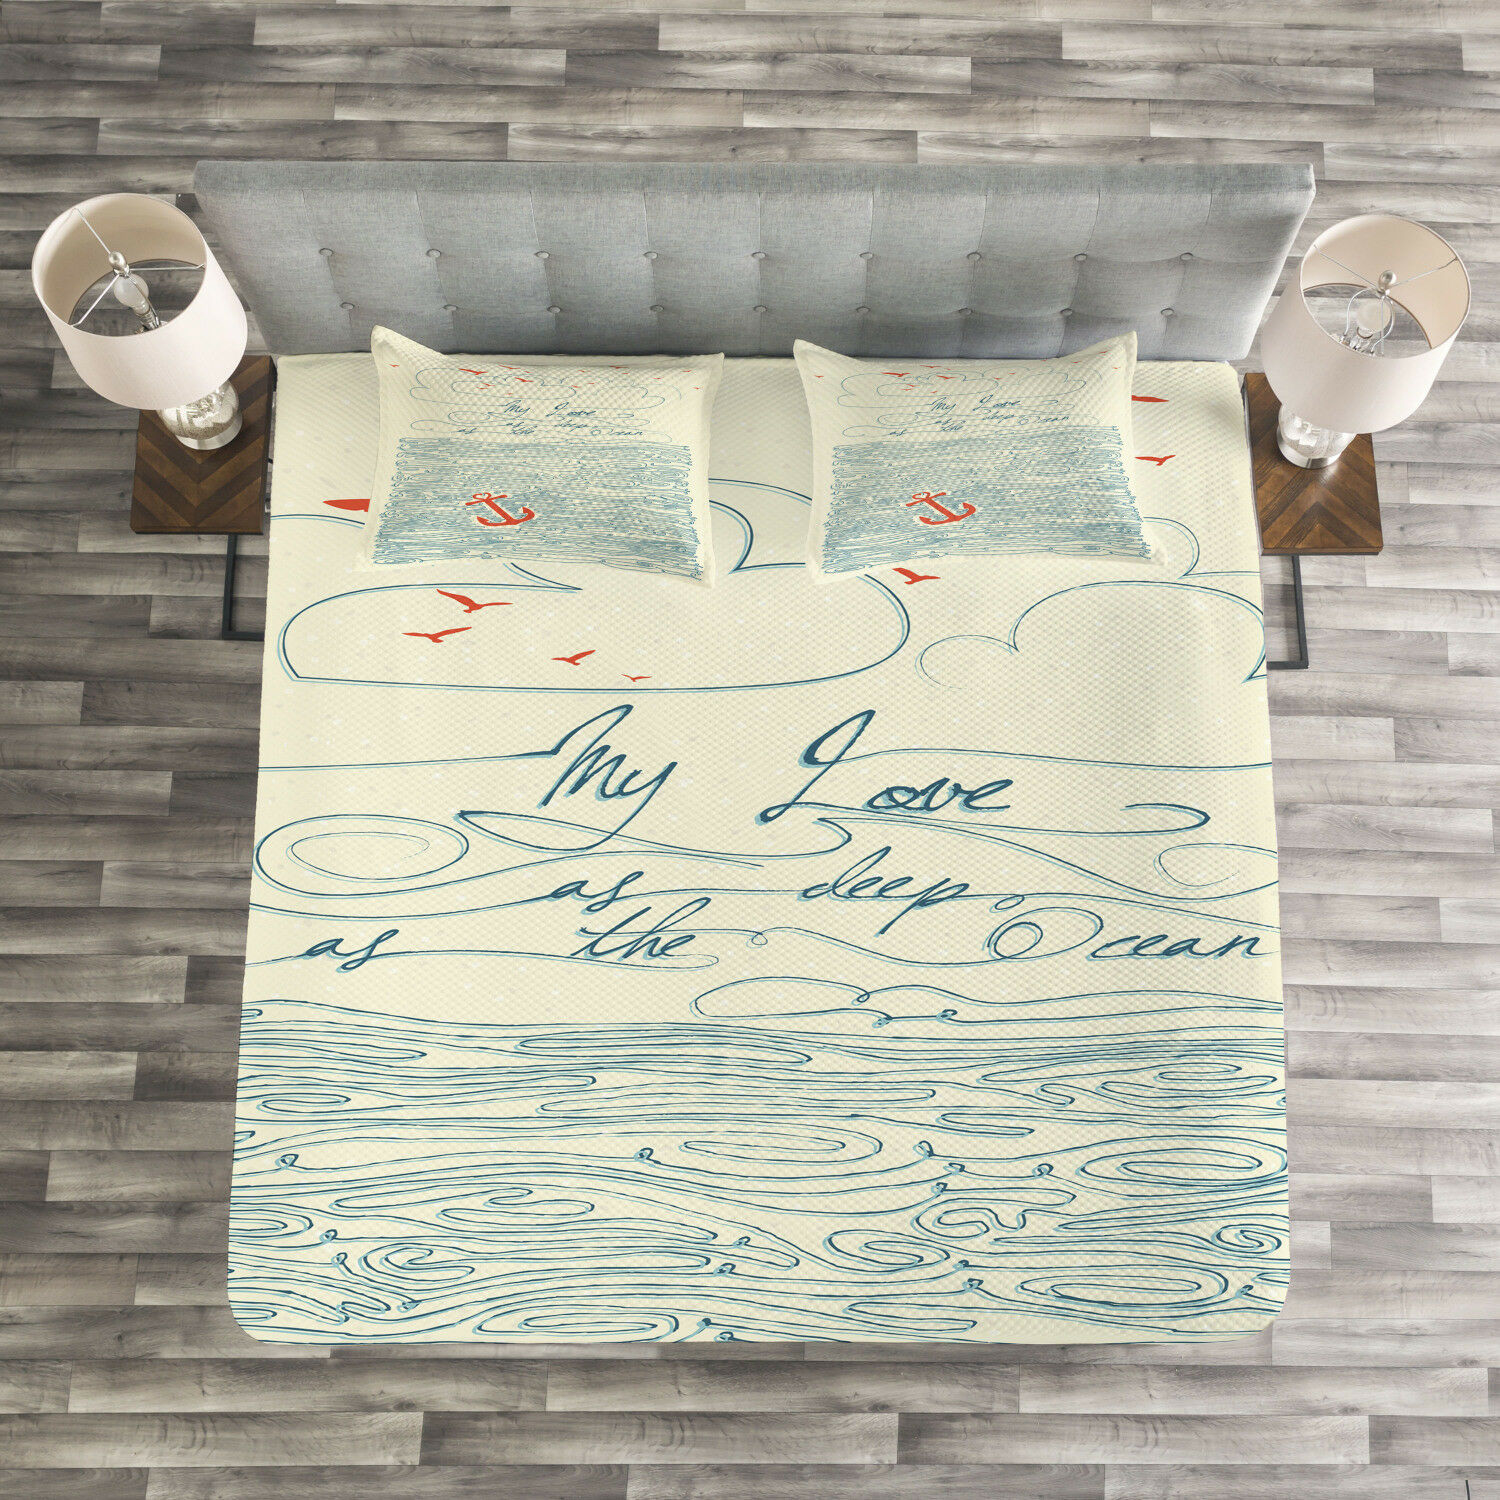 Quote Quilted Bedspread & Pillow Shams Set, Birds and Waves Message Print